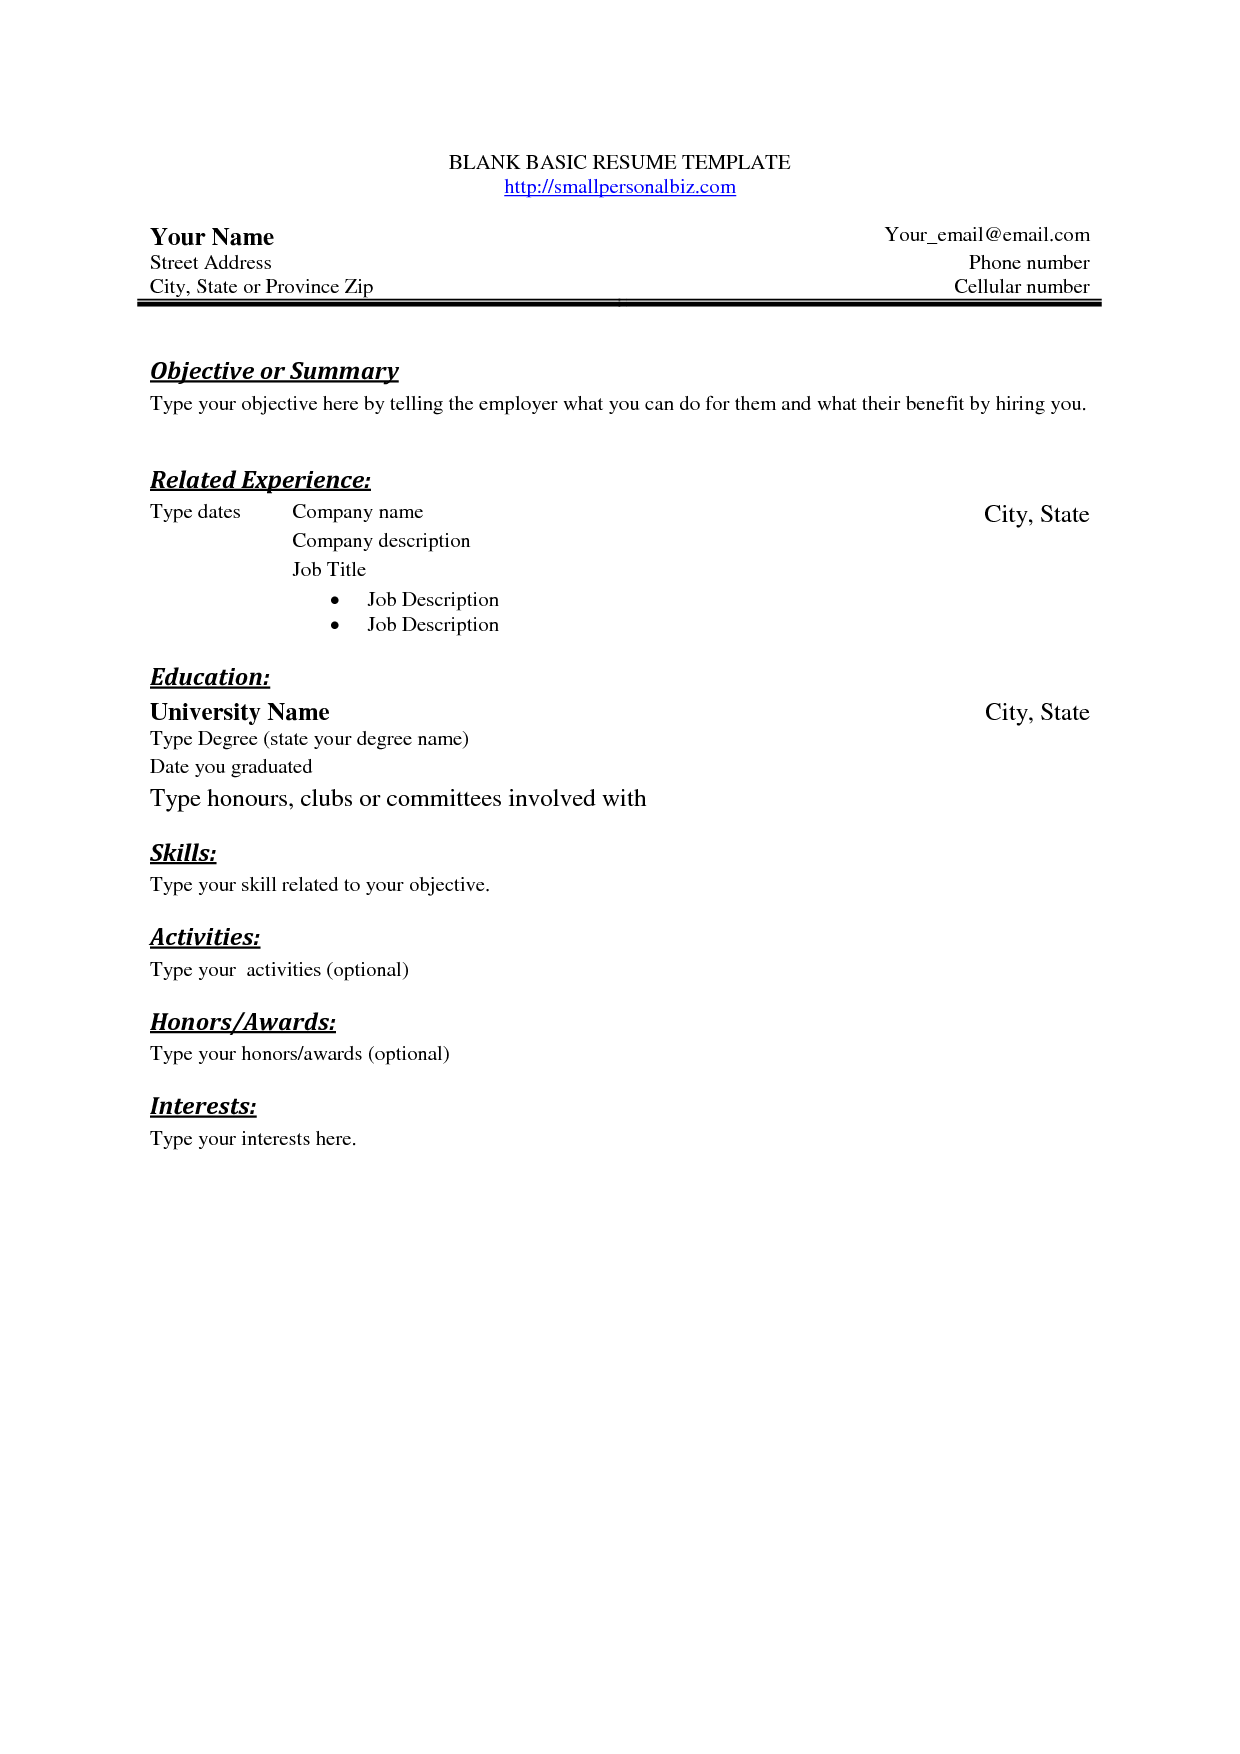 resume Basic Resume Template free basic blank resume template sample resume